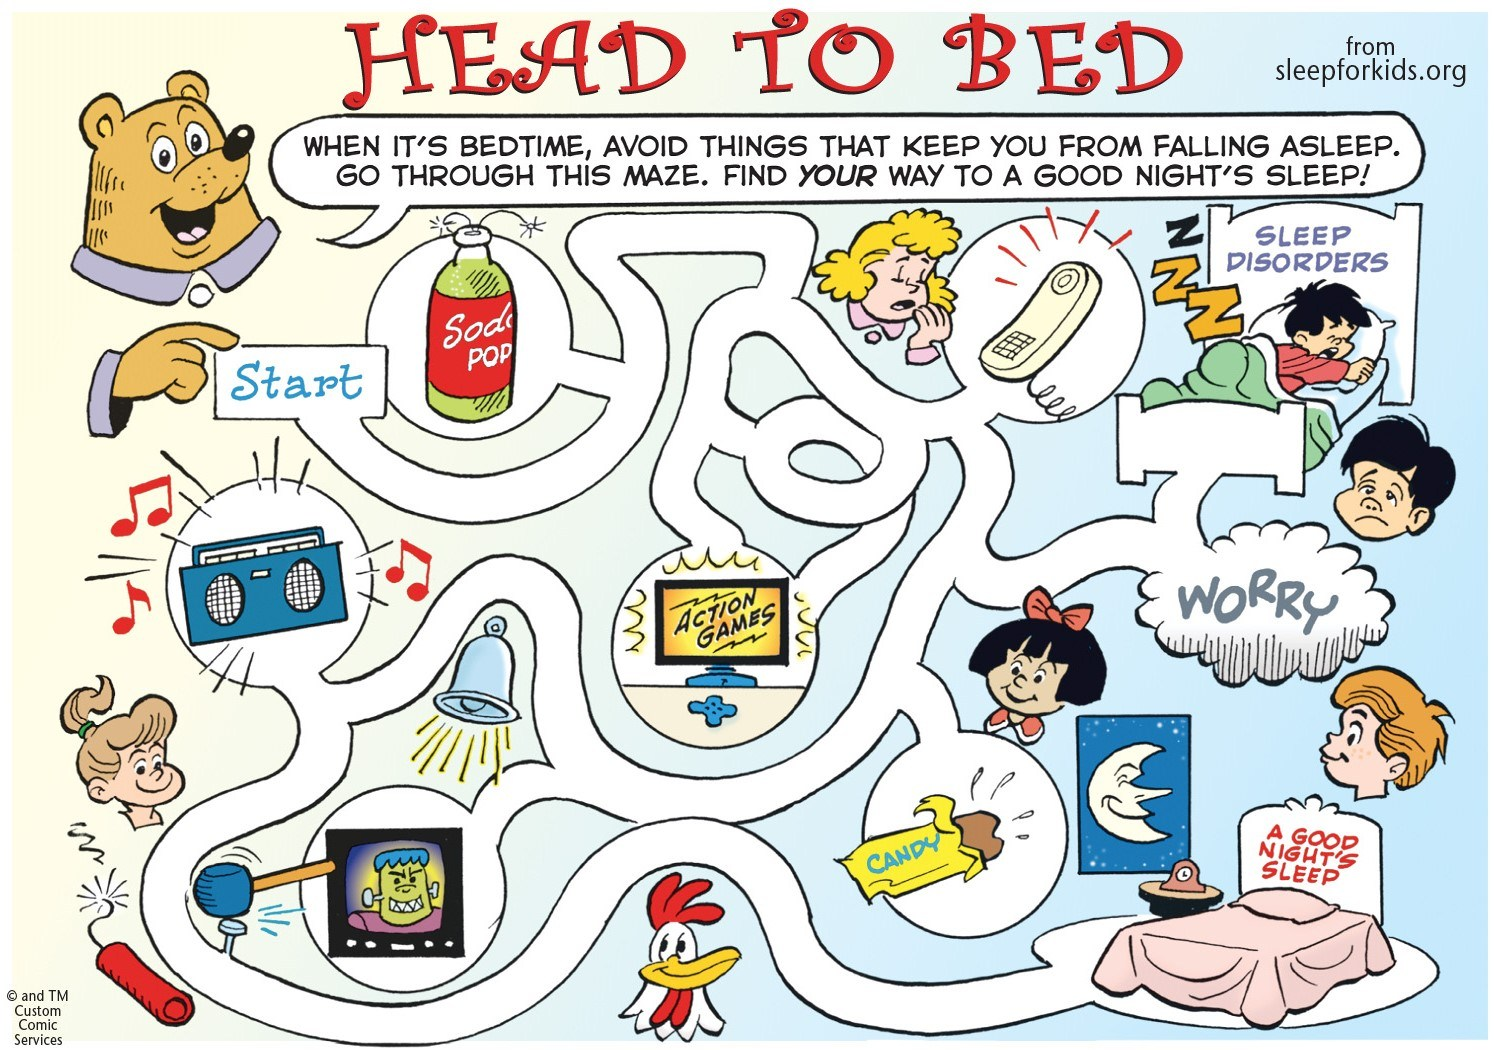 A printable maze to help kids navigate their way towards a good night's sleep.